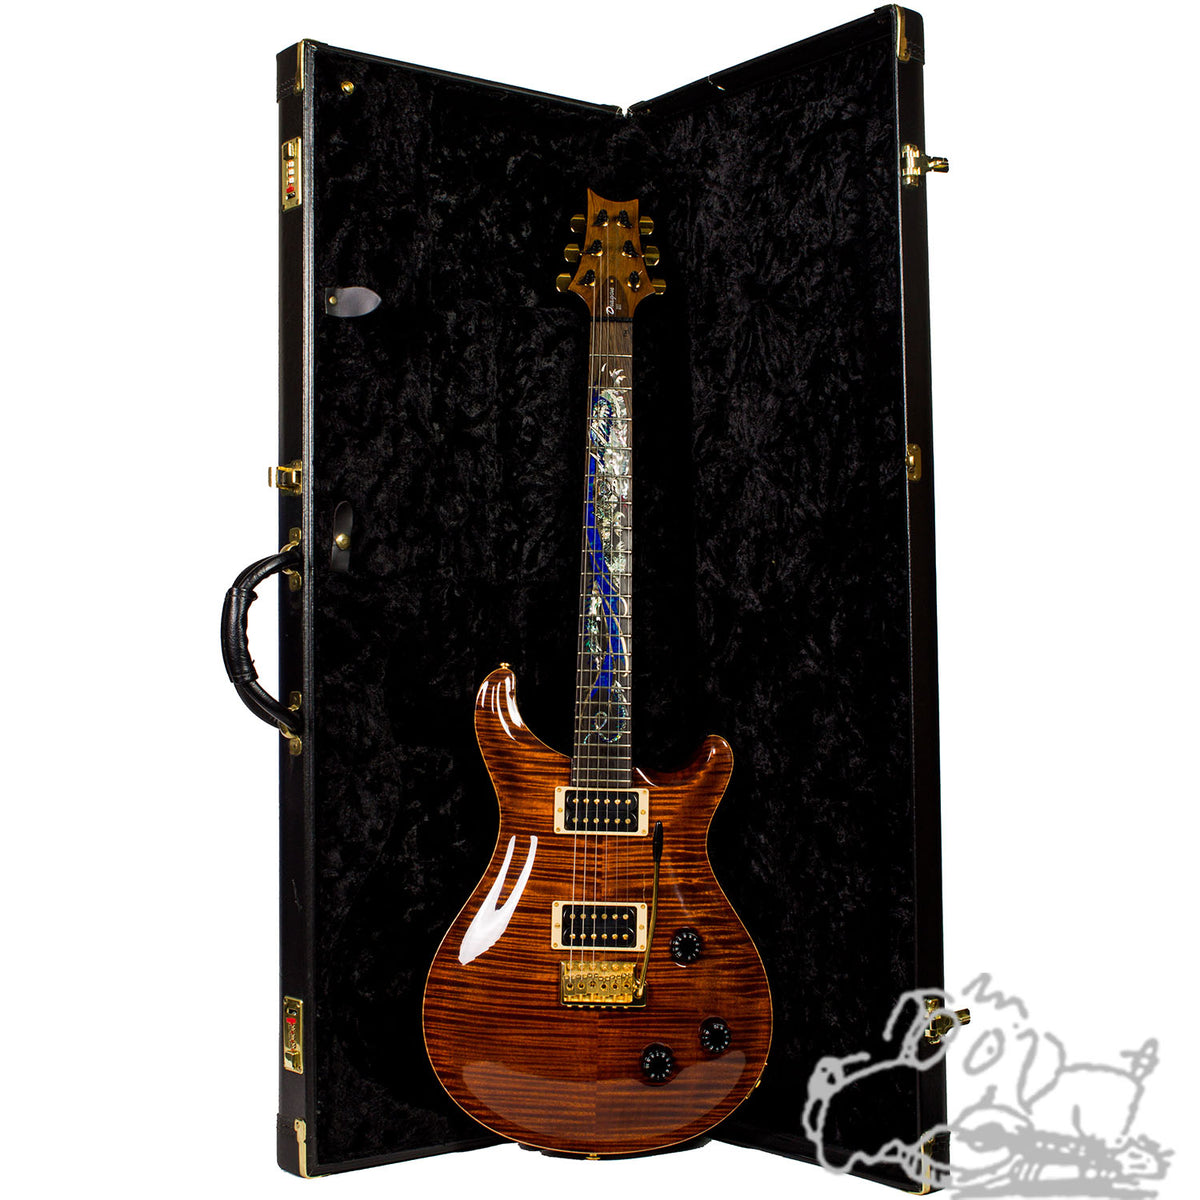 1994 Paul Reed Smith Dragon III #21 in Tortoise Shell